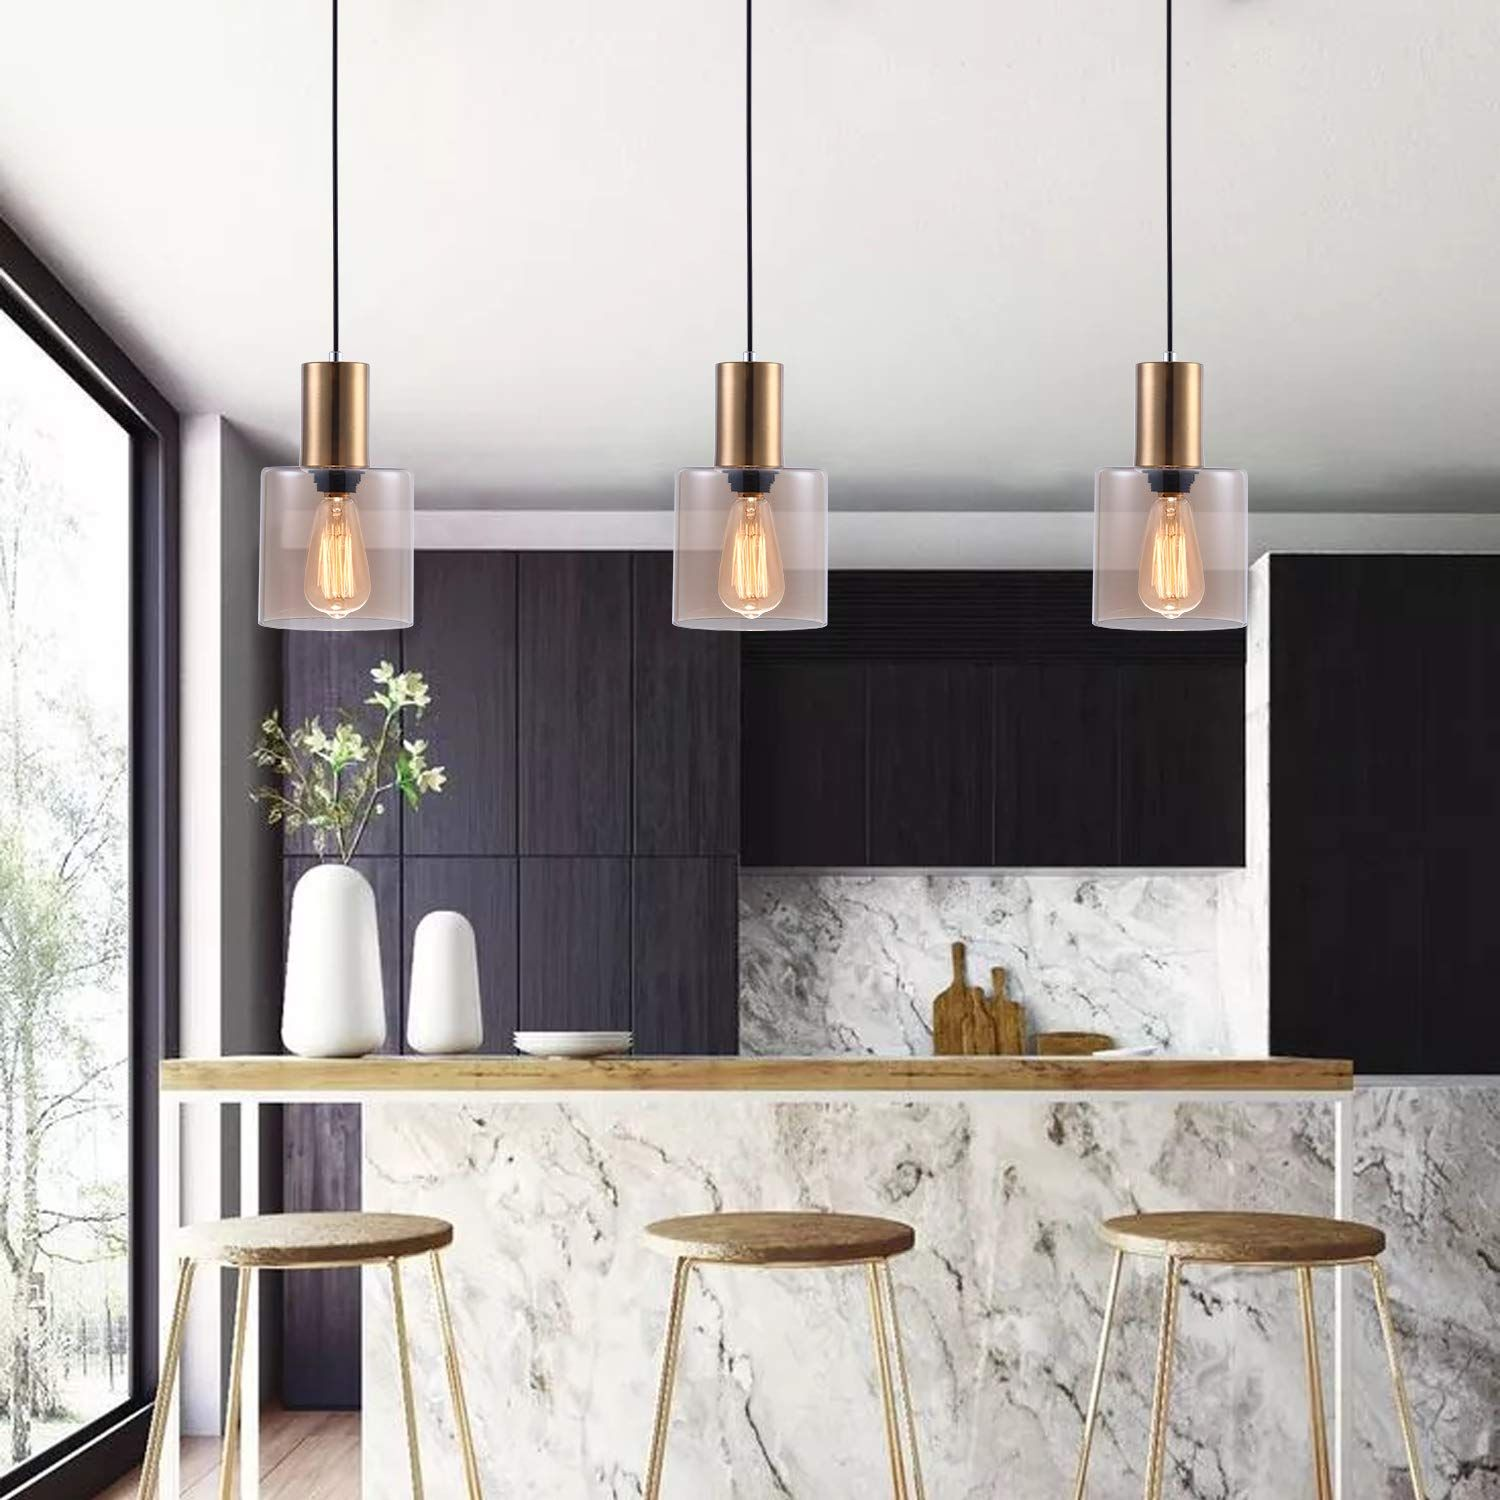 Modern Kitchen Pendant Light With Hand Blown Amber Cylindrical